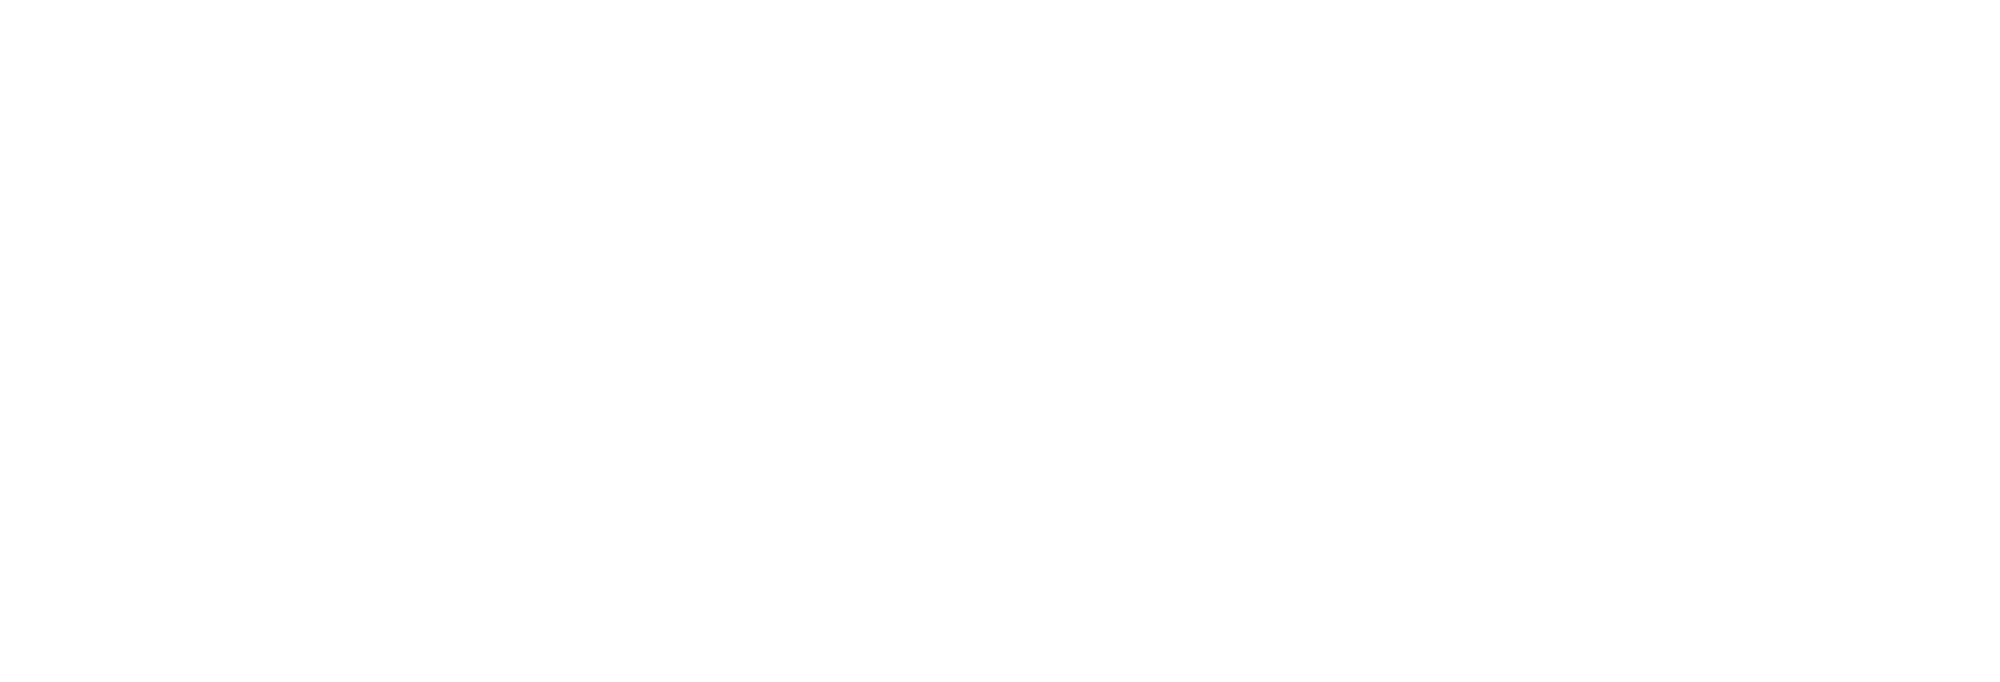 Nigel Hammond Music-logo-white.png